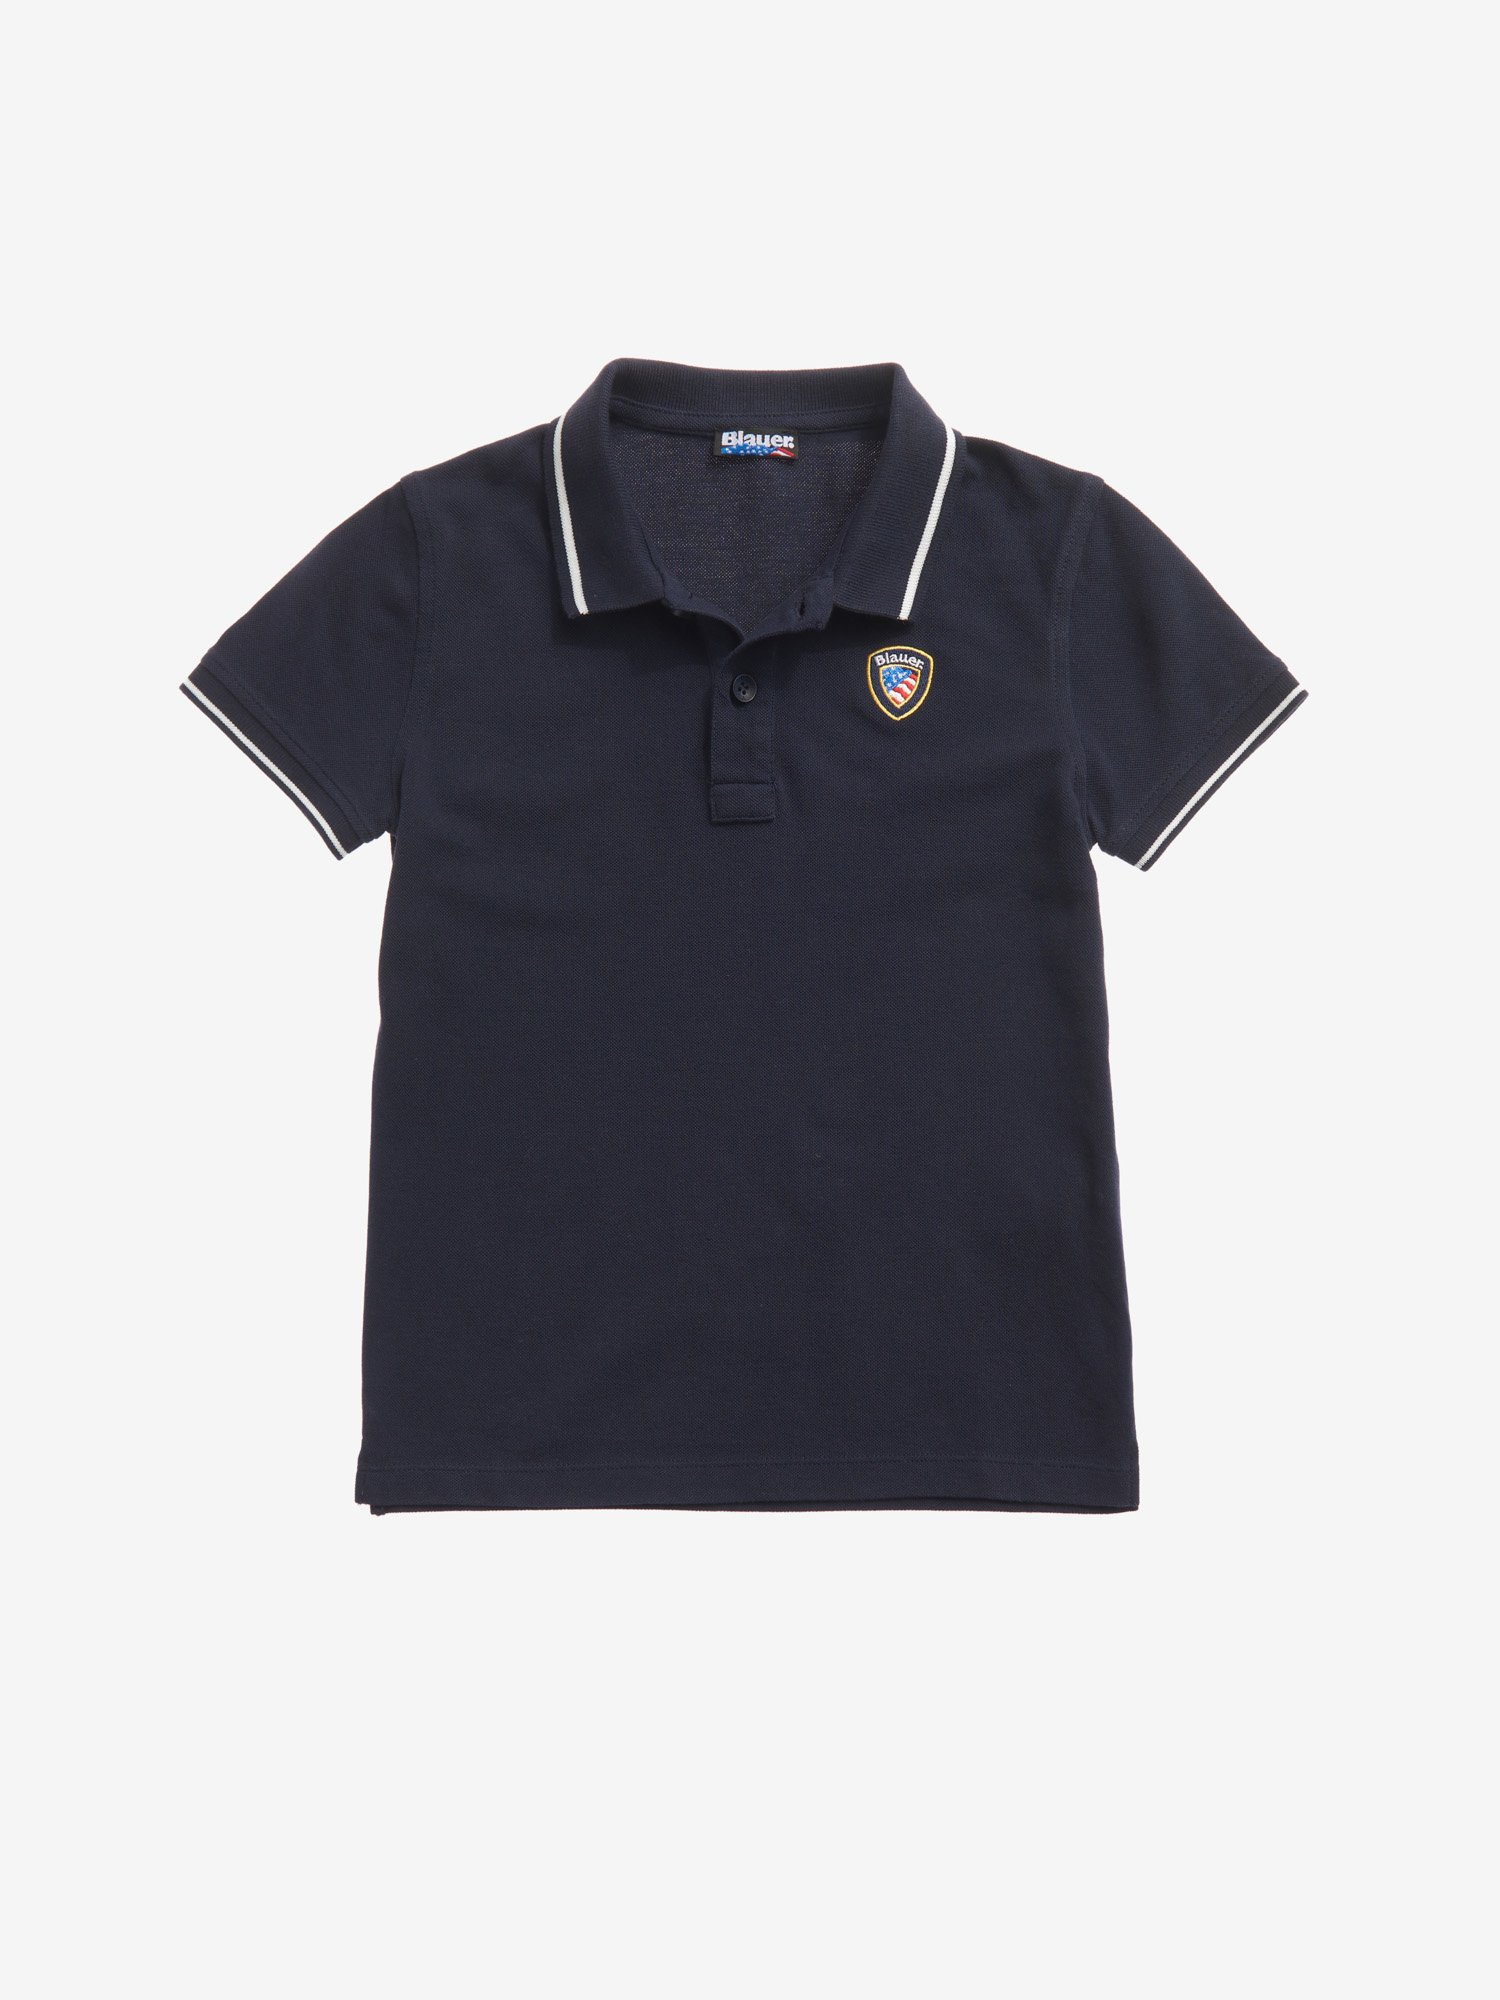 POLO SHIRT WITH STRIPED RIBBING - Blauer